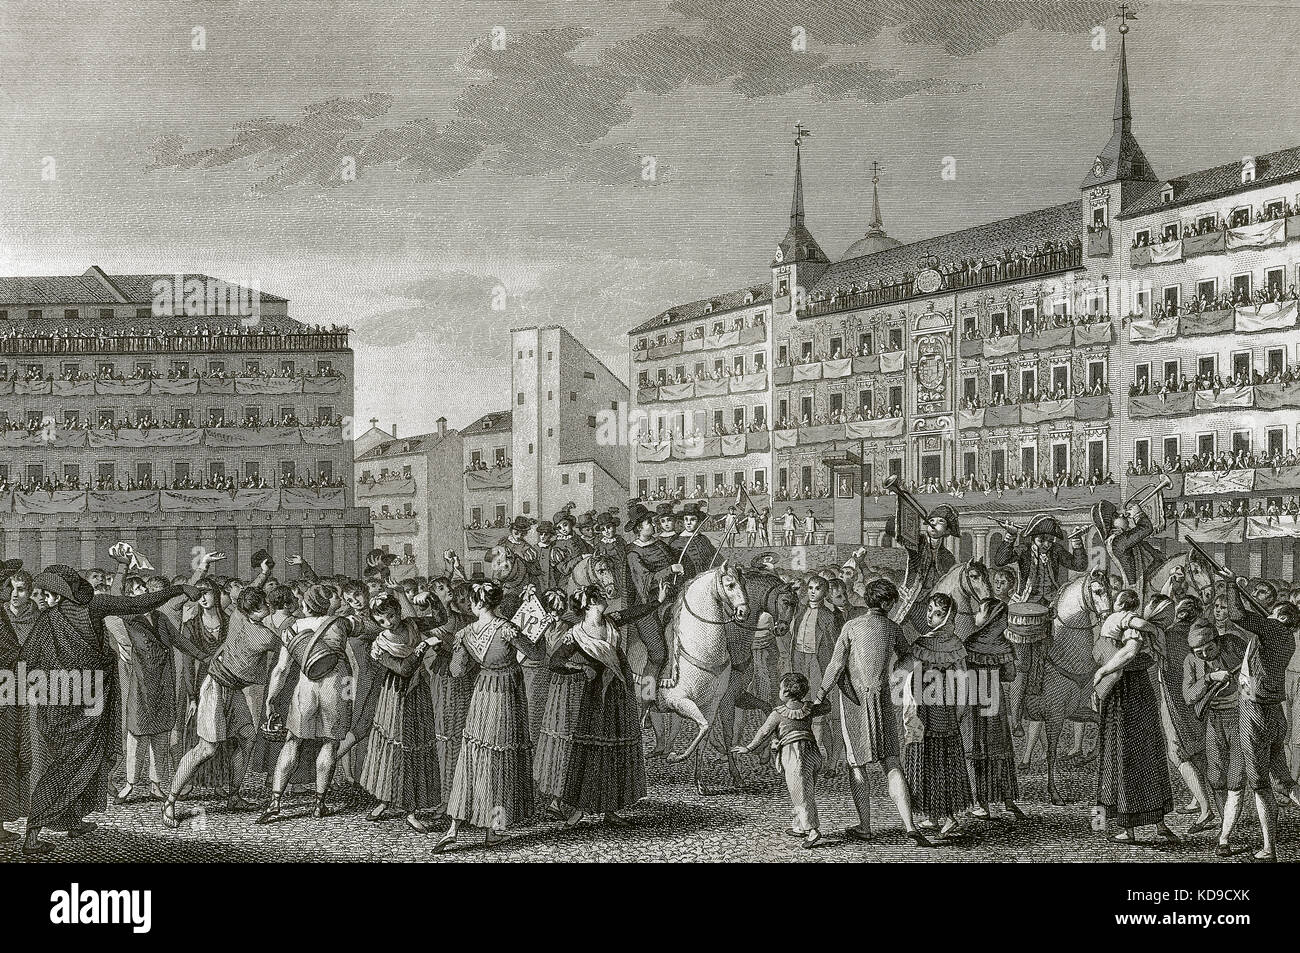 Spain. Madrid. Ferdinand VII (1784-1833) is proclaimed king of Spain in absentia on 24 August, 1808 in the Main - Stock Image